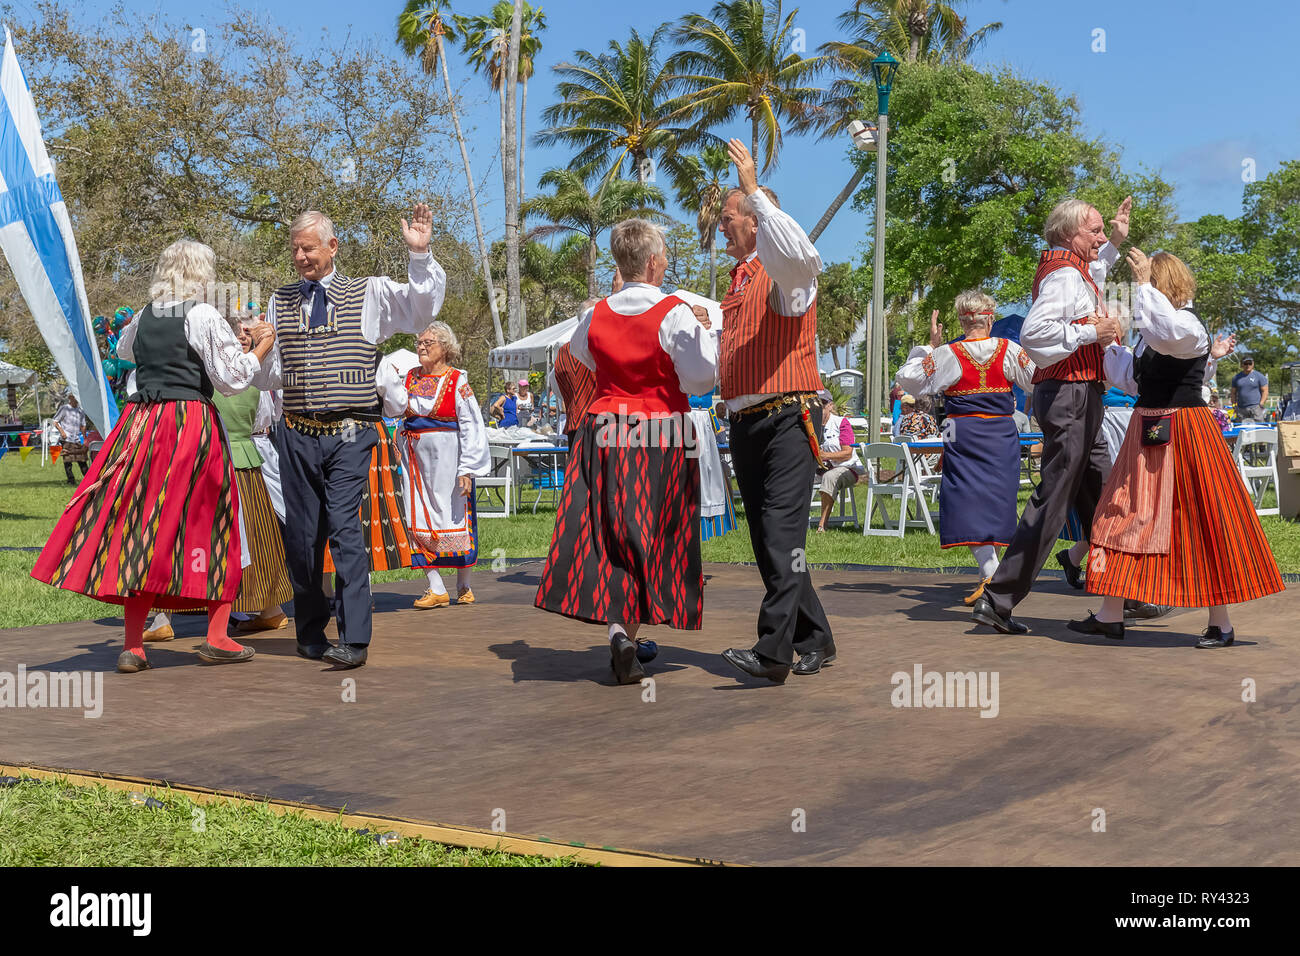 Lake Worth, Florida, USA March 3, 2019, Midnight Sun Festival Celebrating Finnish Culture. The couples dance in partnership on an outdoor dance floor. - Stock Image